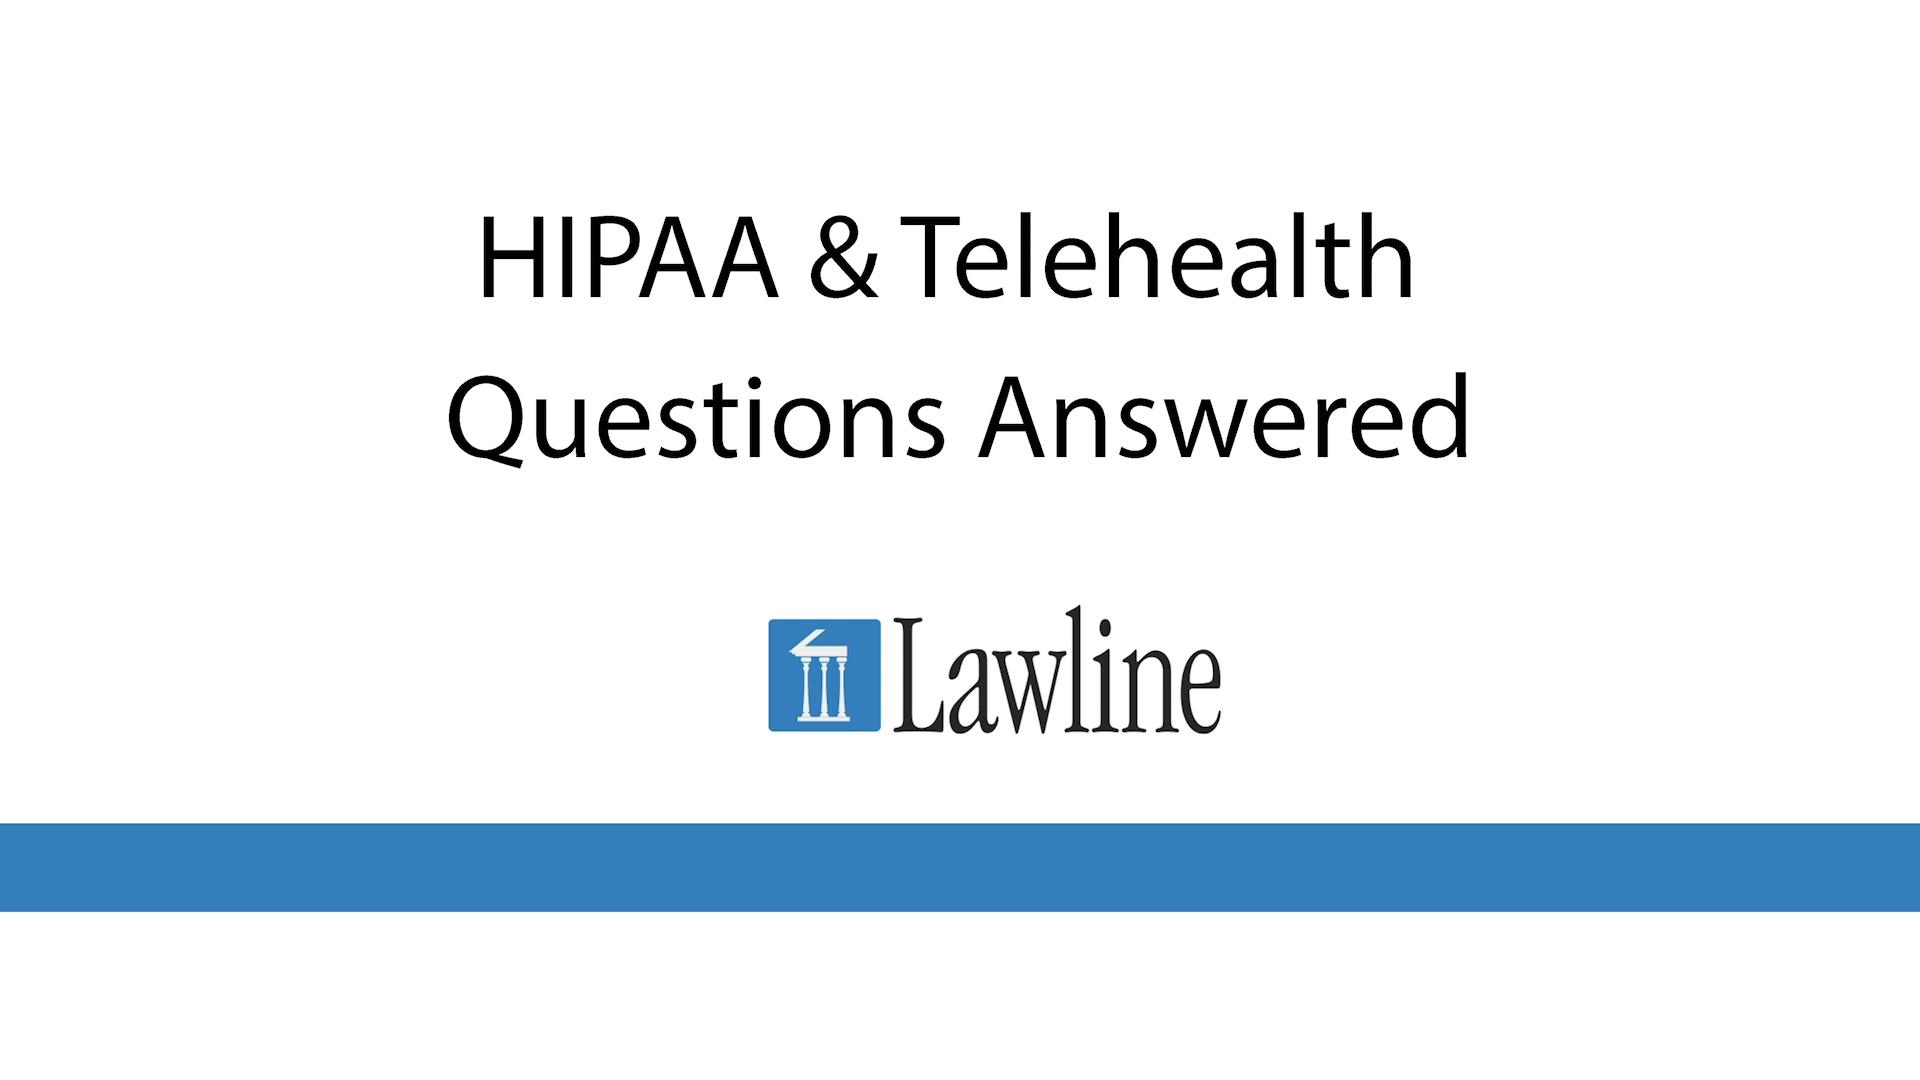 HIPAA & Telehealth Questions Answered EDITED